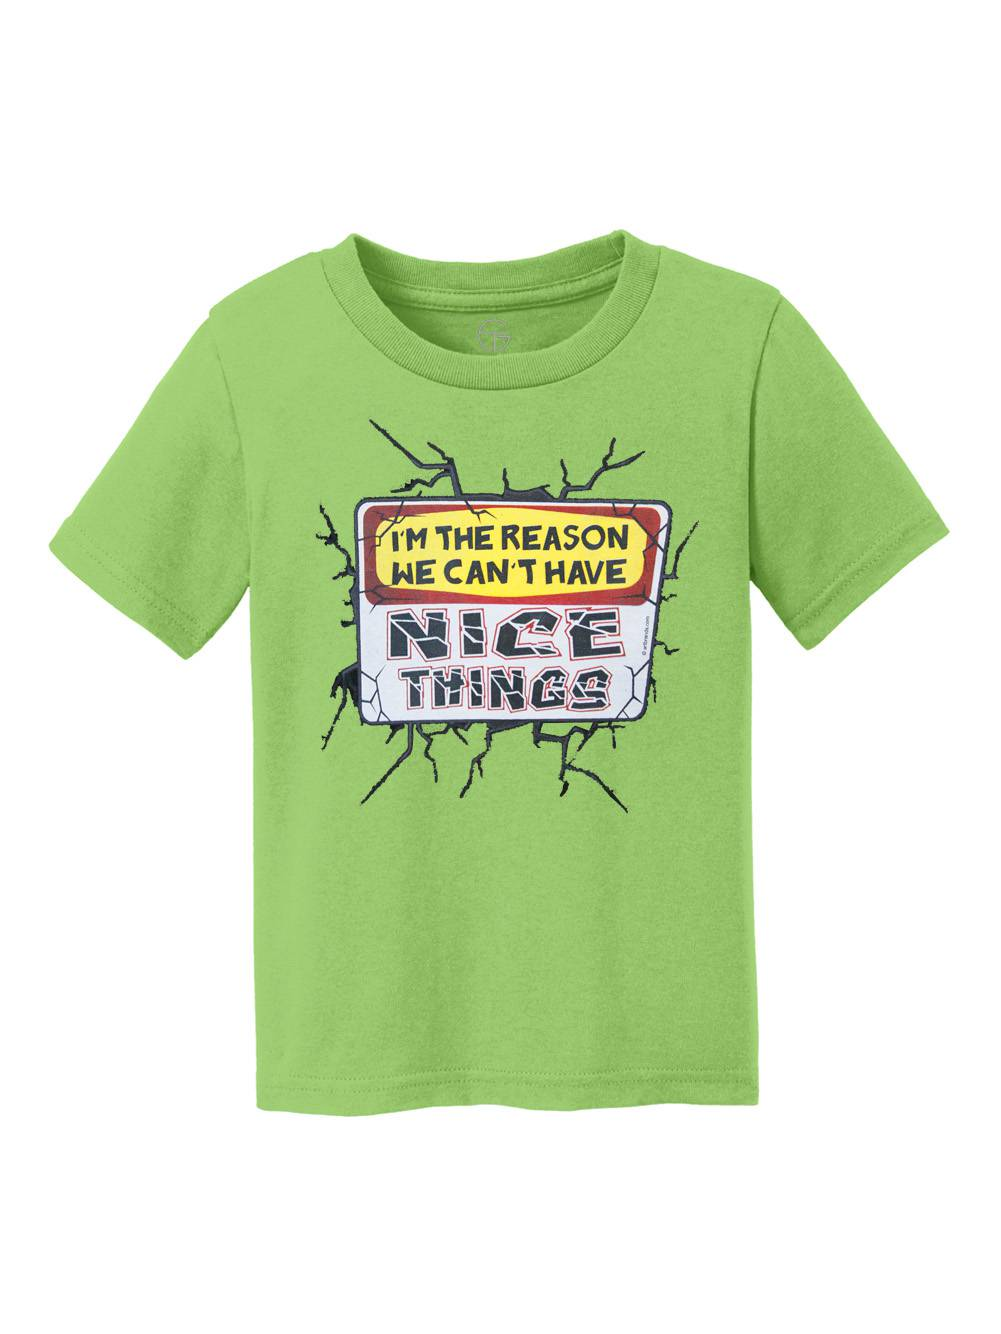 I'm The Reason We Can't Have Nice Things Youth Cotton T-Shirt